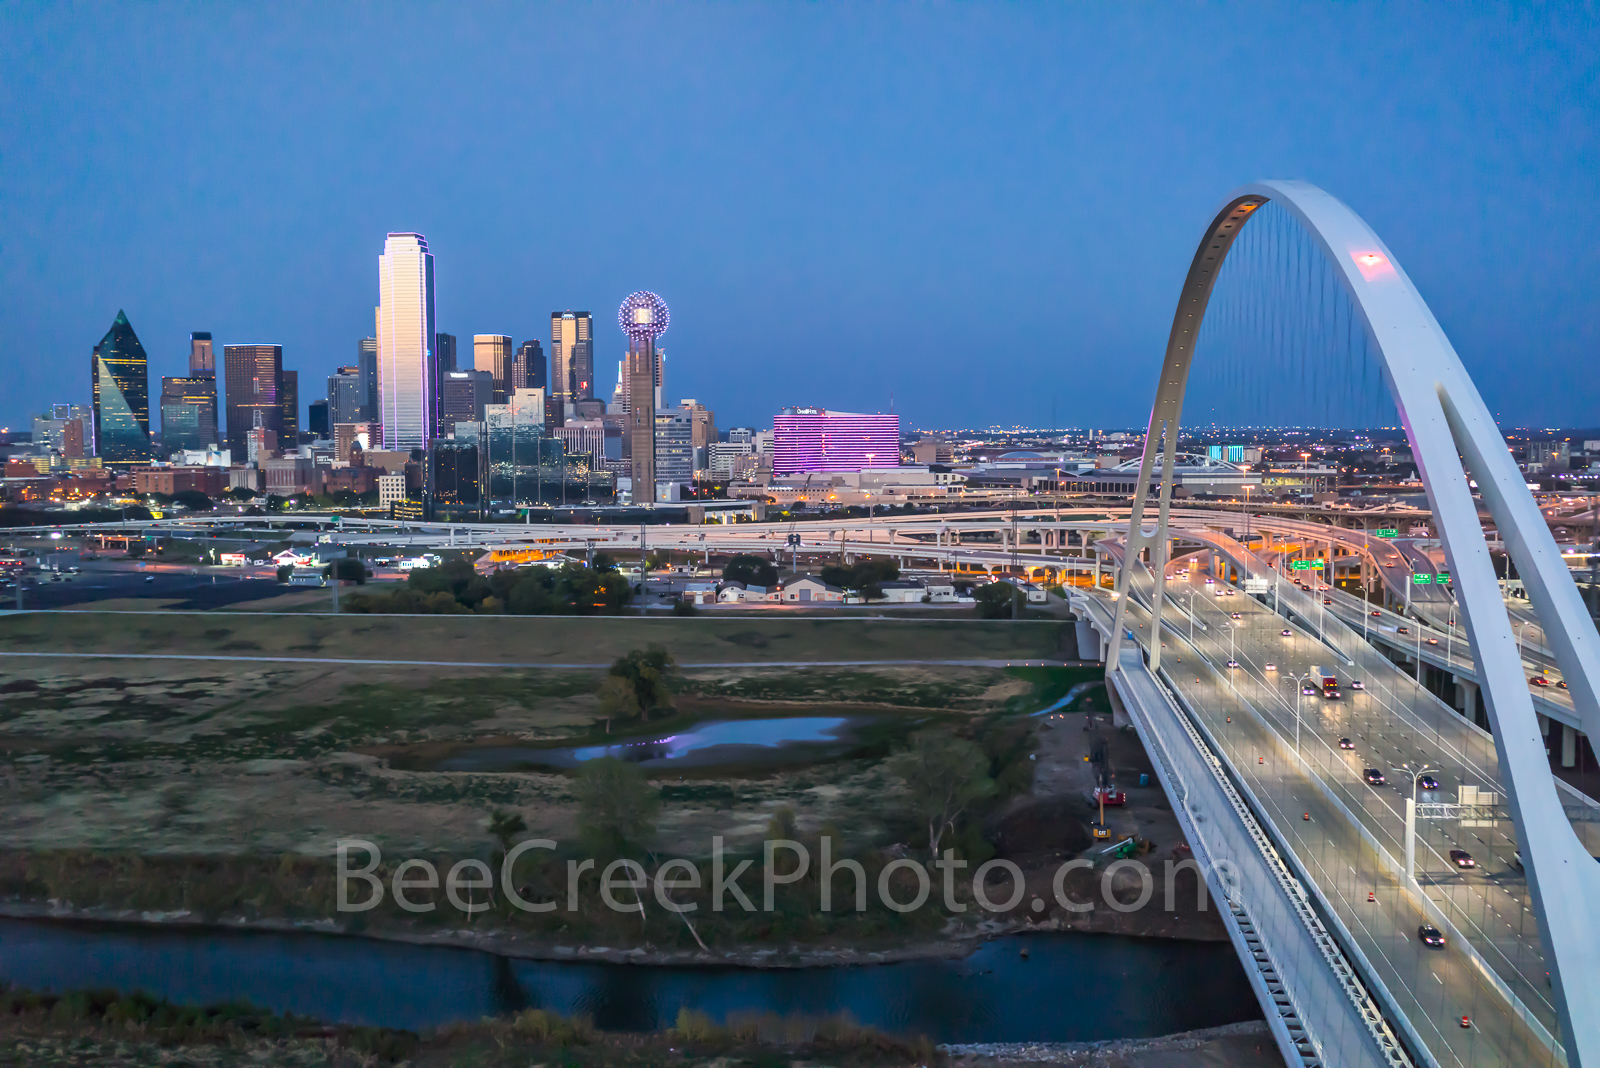 Dallas skyline, Margaret McDermott Bridge, downtown, blue hour, steel bridge, suspended, arches, Trinity River,, IH30, Trinity project, Santiago Calatrava, pedestrian, bike path, hike and bike trails,, photo